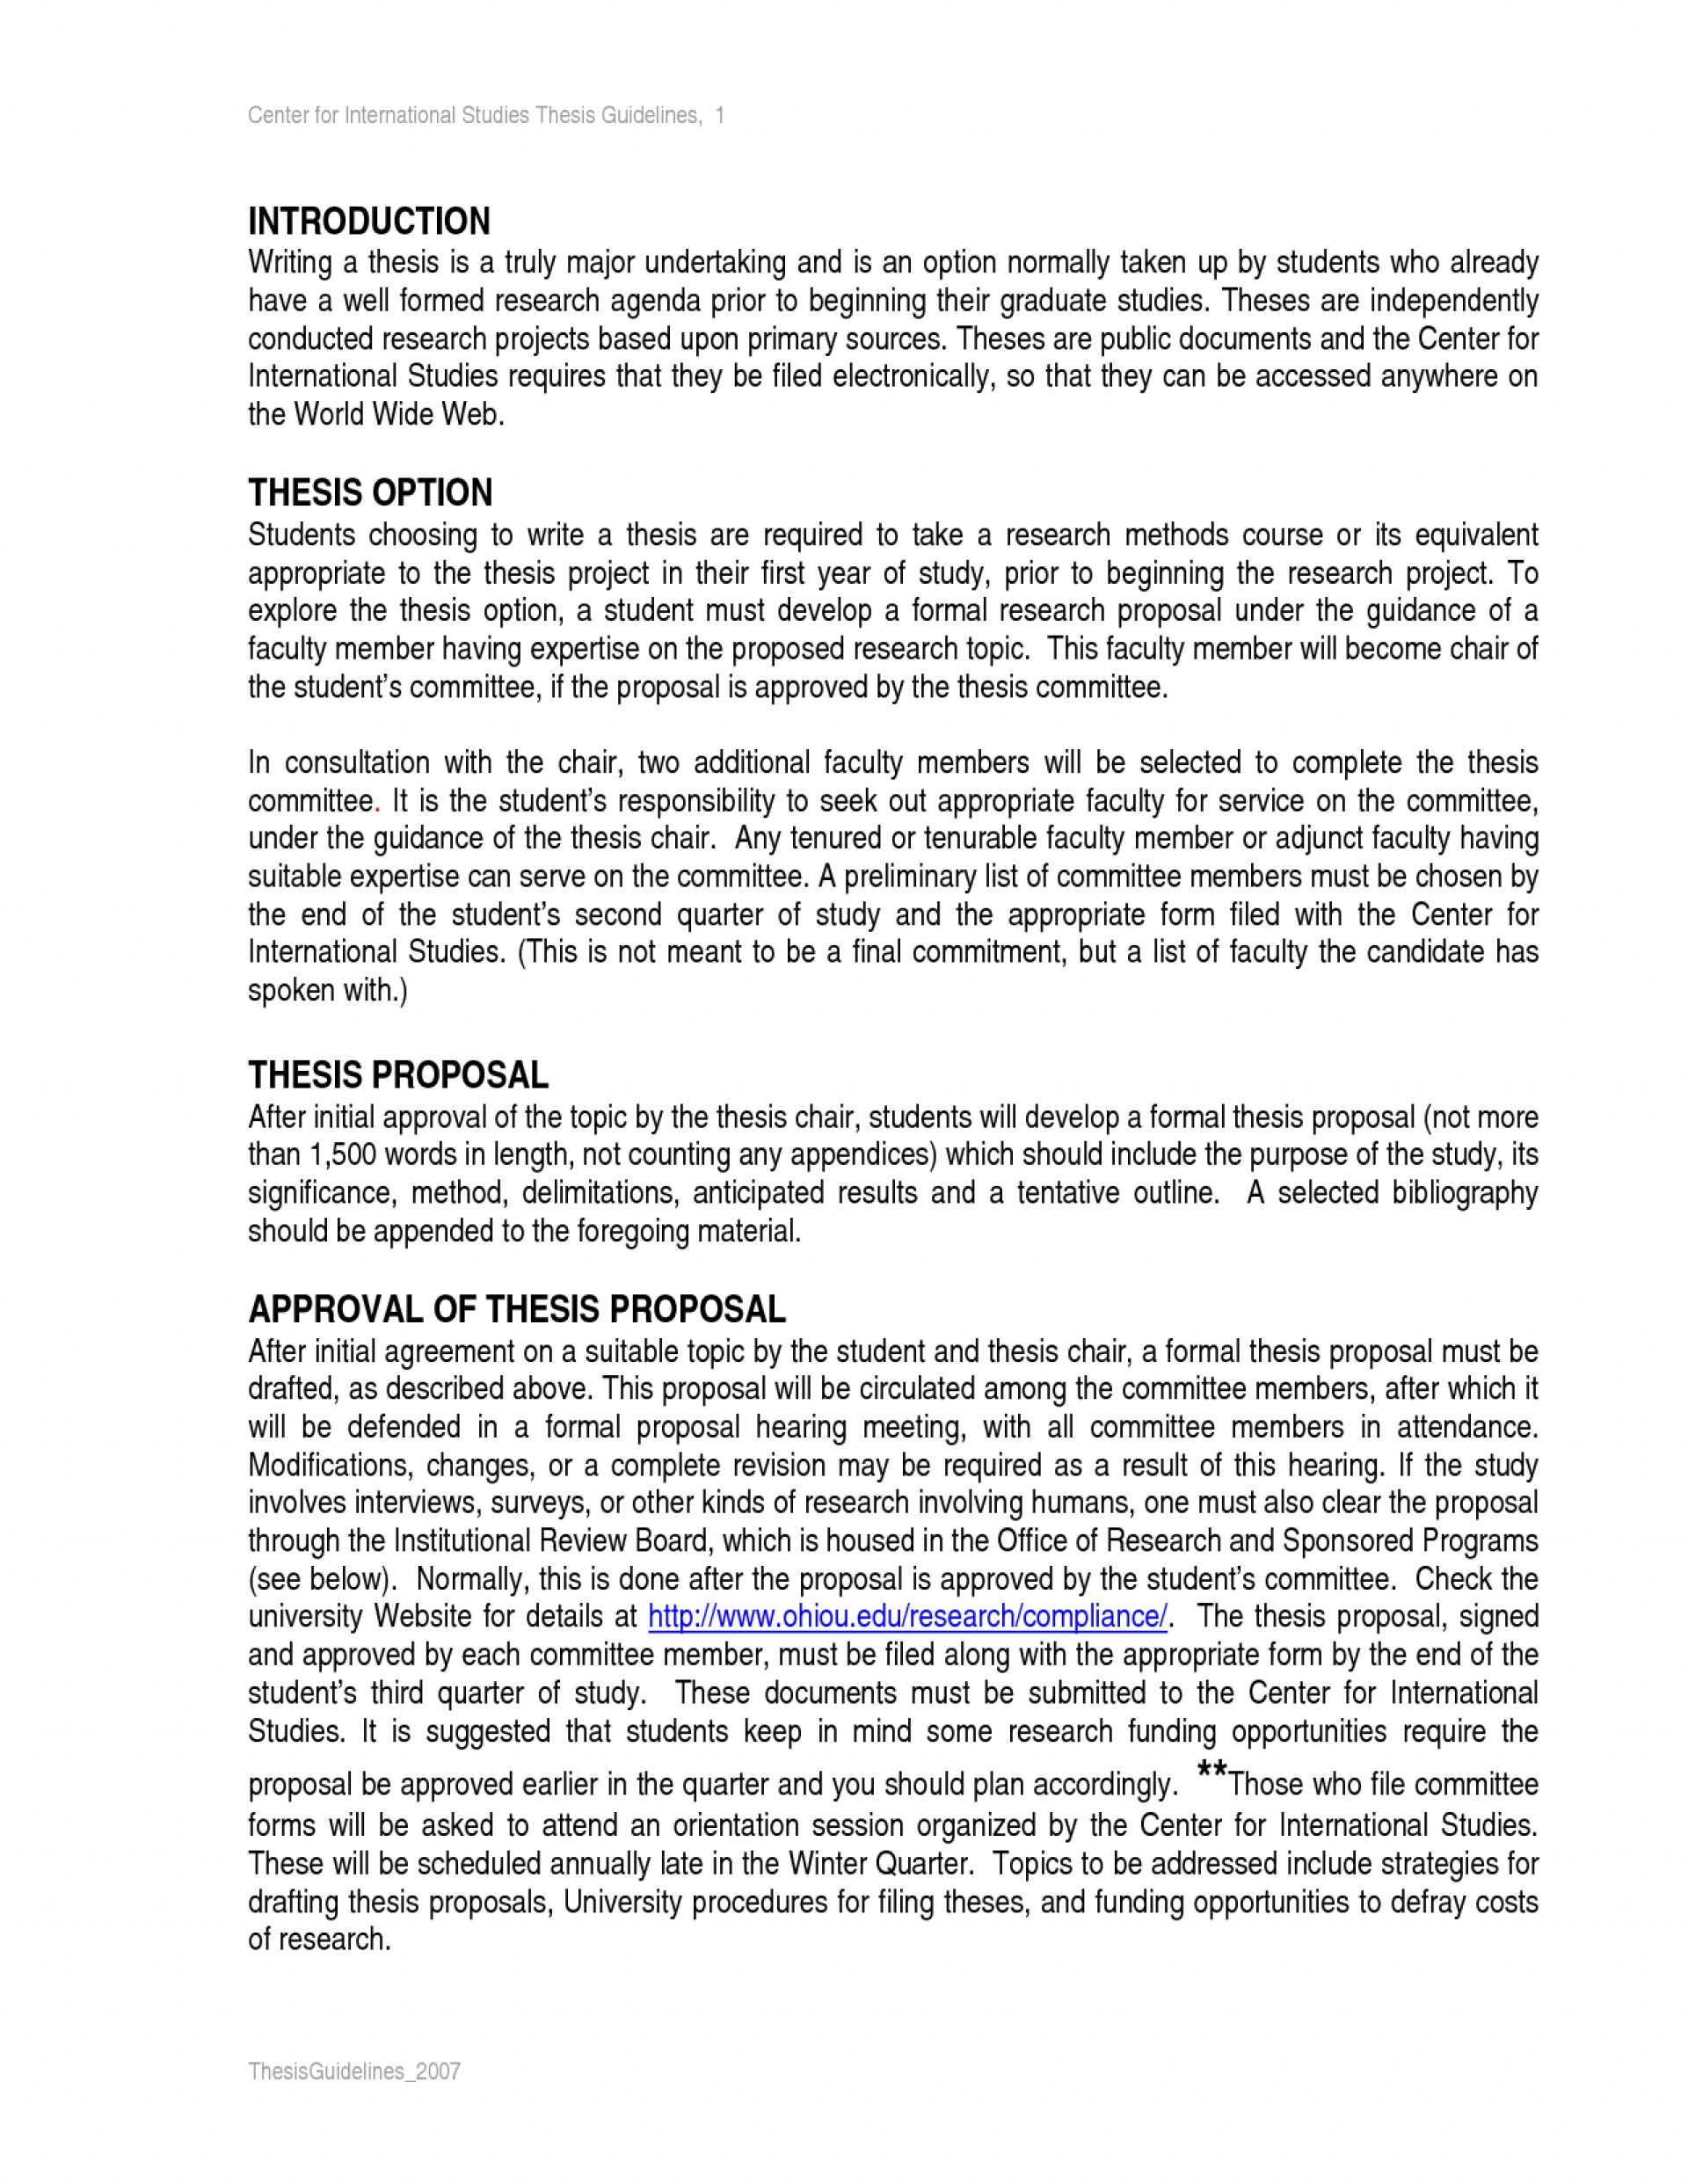 011 Academic Writingtroduction Thesis Essay Example What Should Anclude Dreaded An Introduction Include In A Research Paper Argumentative Your 1920